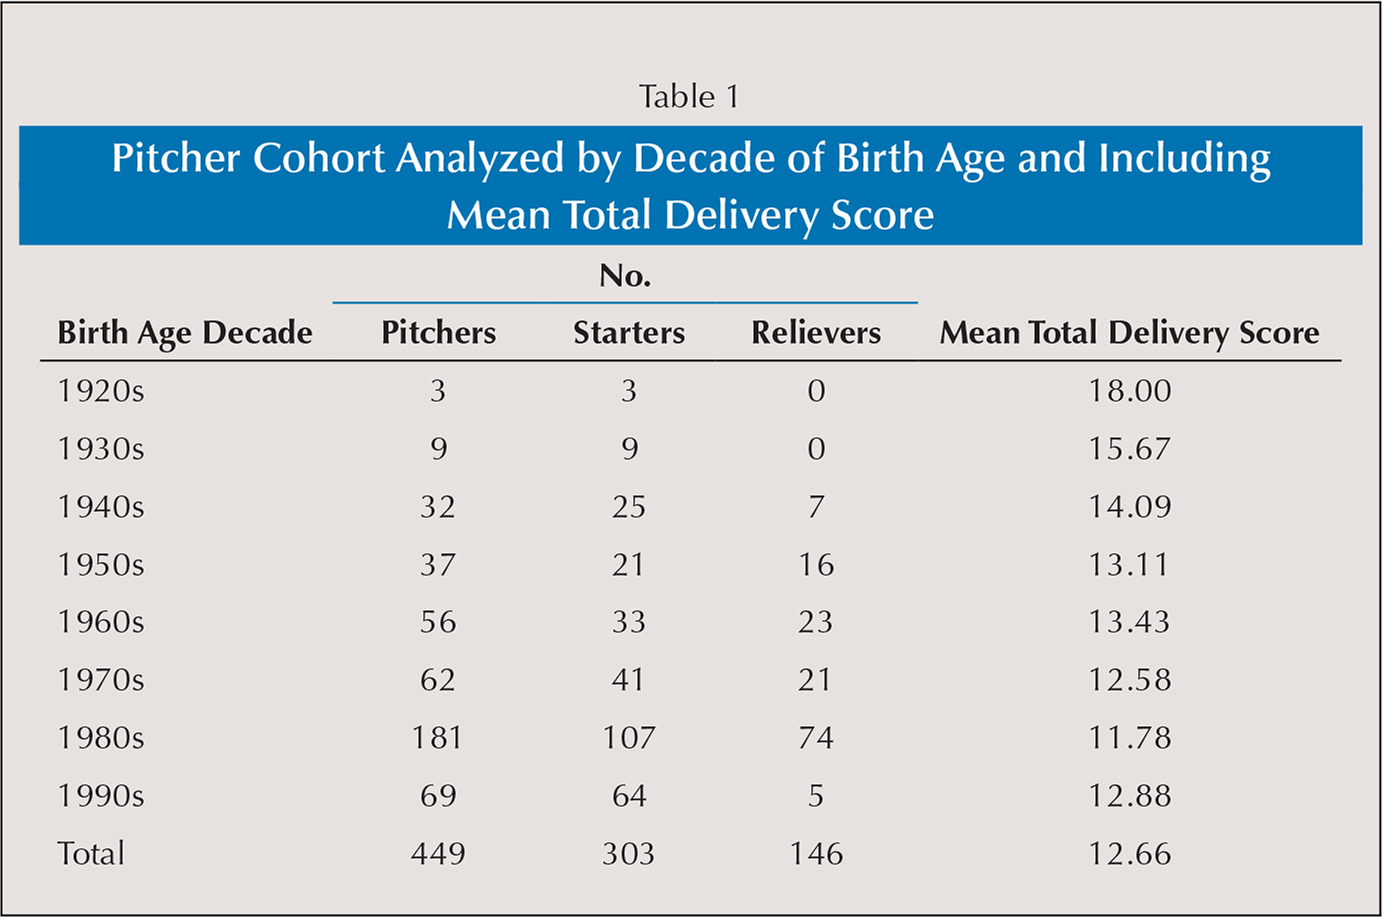 Pitcher Cohort Analyzed by Decade of Birth Age and Including Mean Total Delivery Score